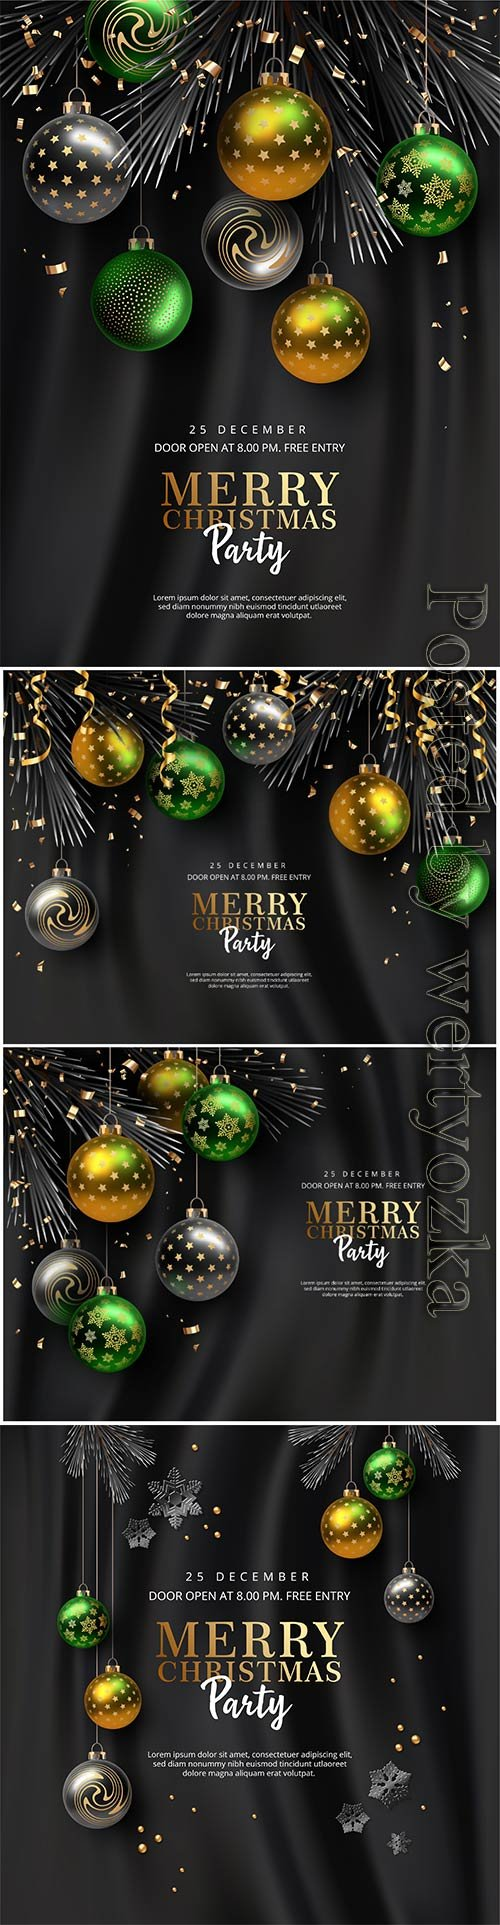 Christmas and new year party vector poster